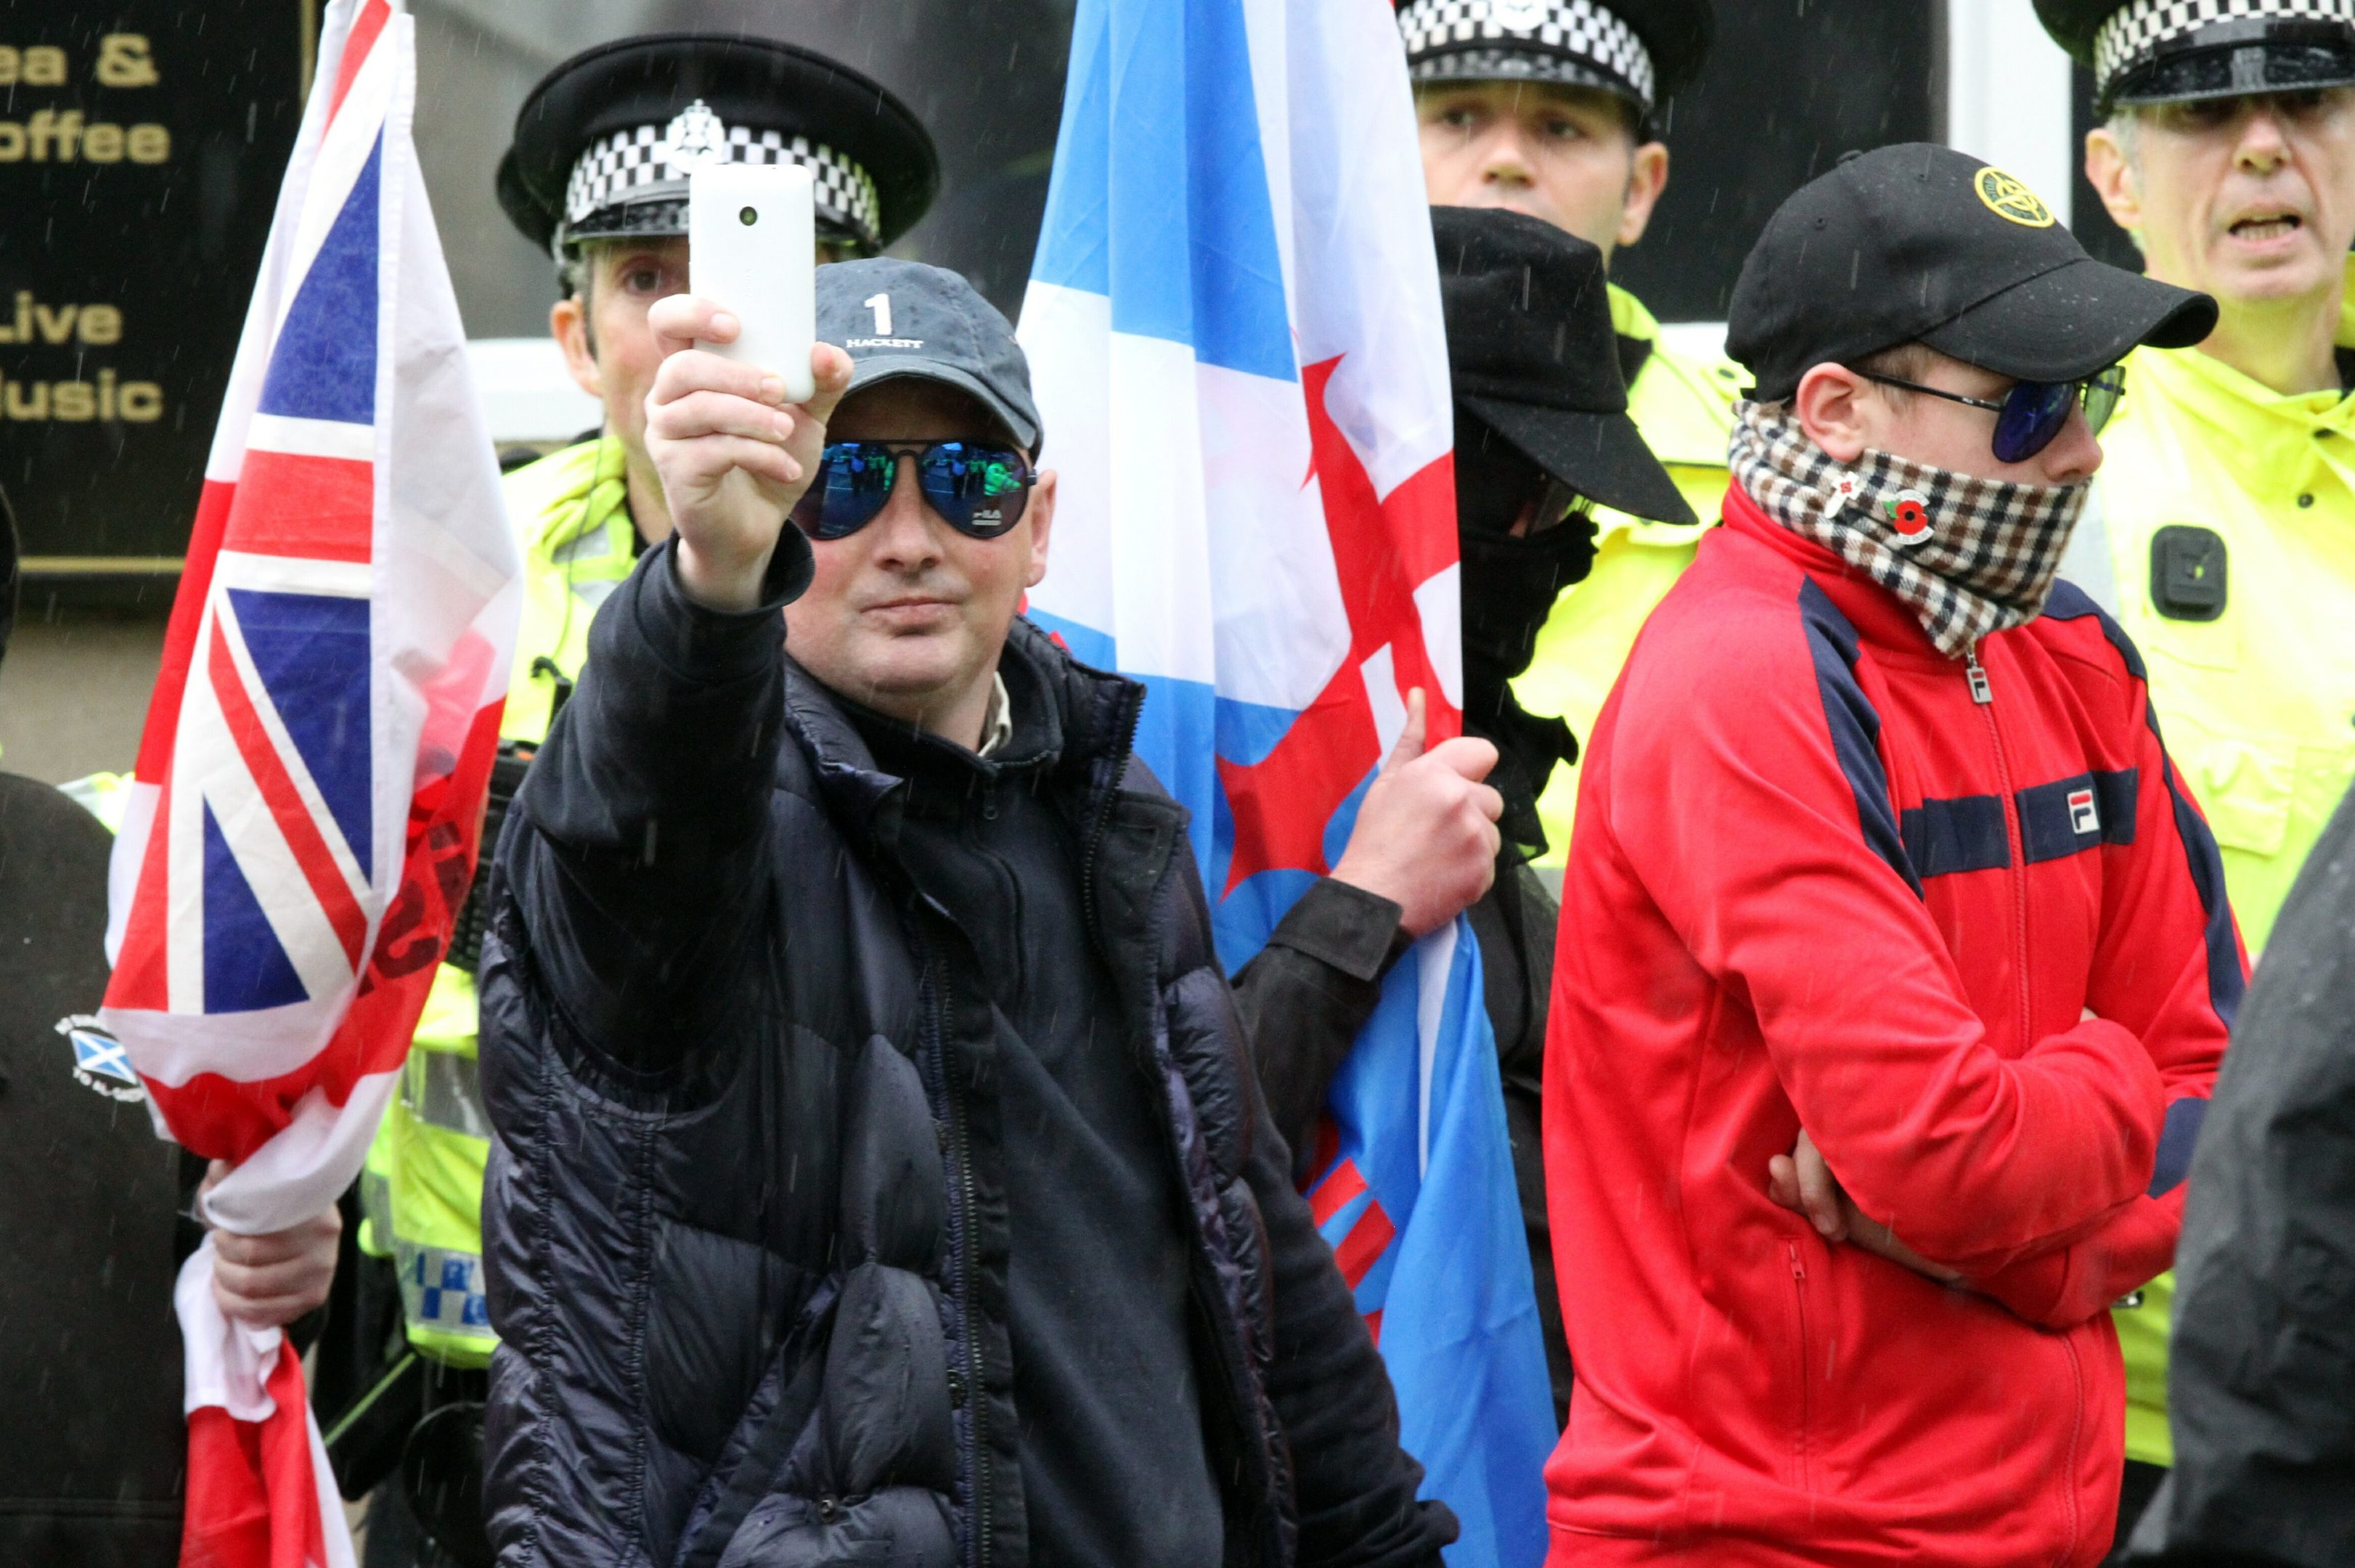 The Scottish Defence League protest march in Perth.